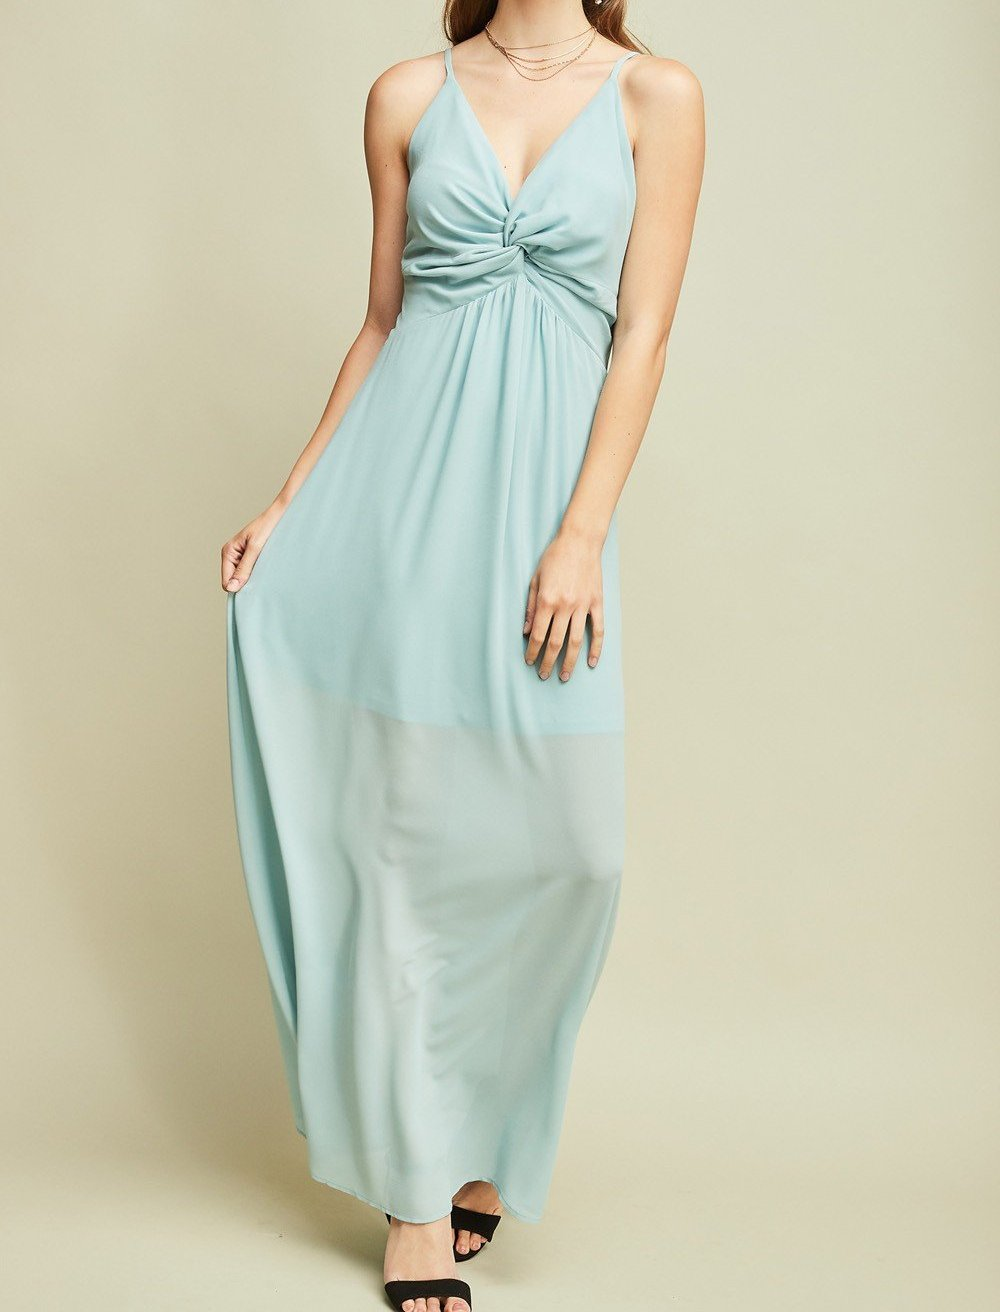 Simply Gorgeous Maxi Dress (+colors)